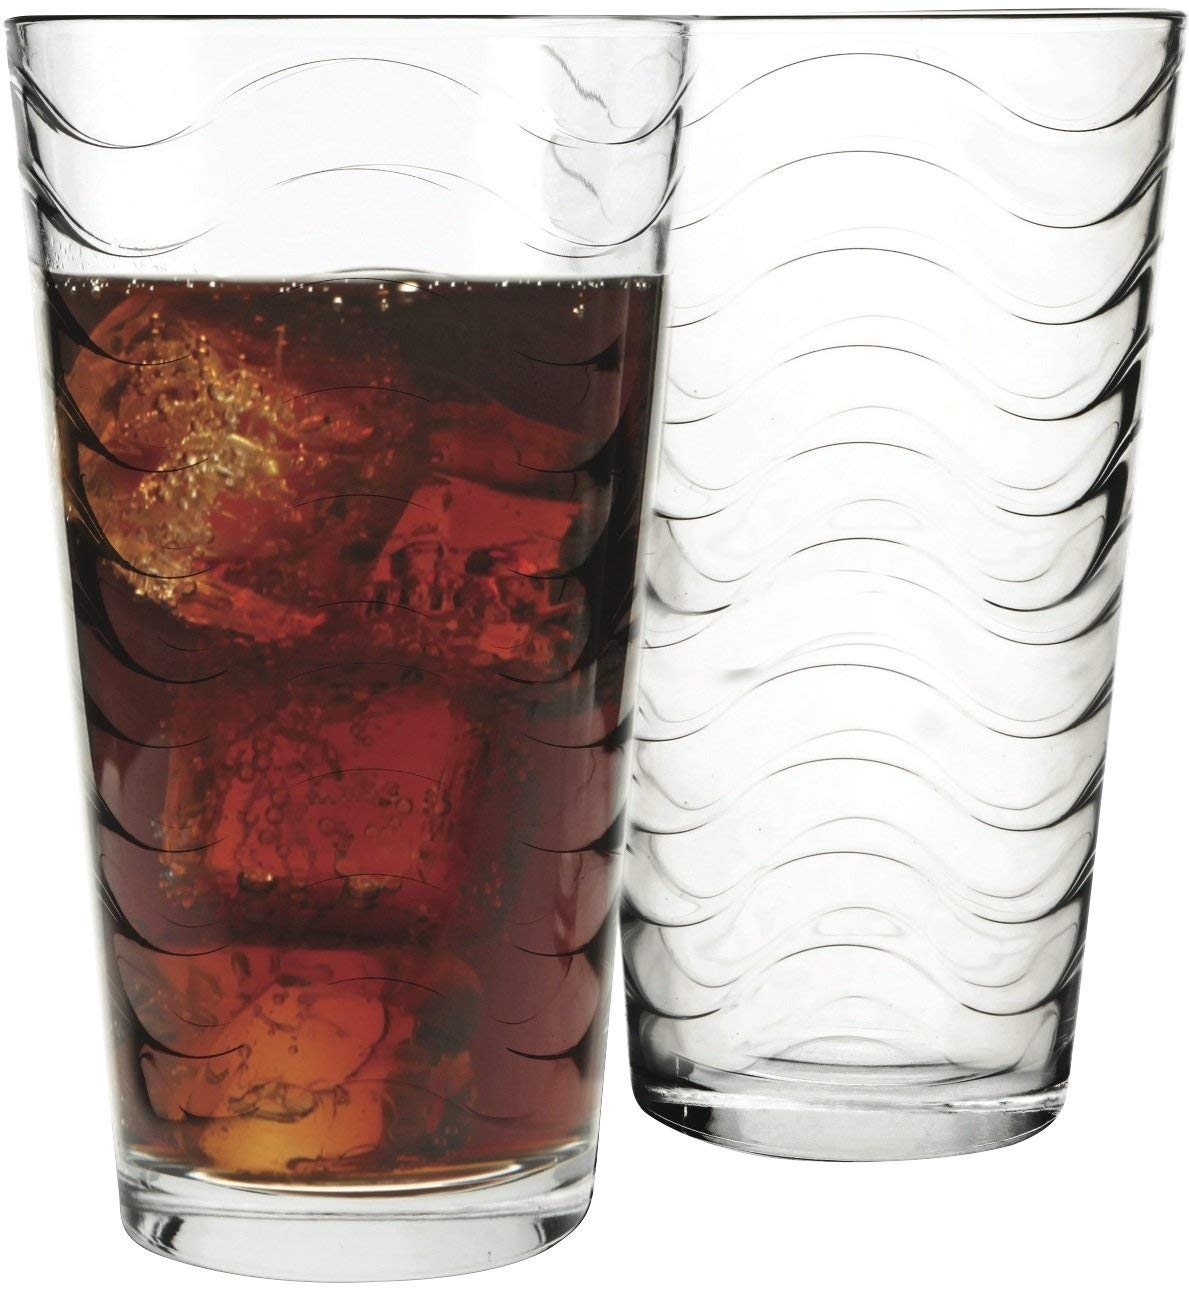 Circleware 40136 Pulse Heavy Base Highball Tumbler Drinking Glasses Beverage Ice Tea Cups, Kitchen Entertainment Glassware for Water, Juice, Milk, Beer, Bar, Farmhouse Decor, 15.75 oz, Huge Set of 10